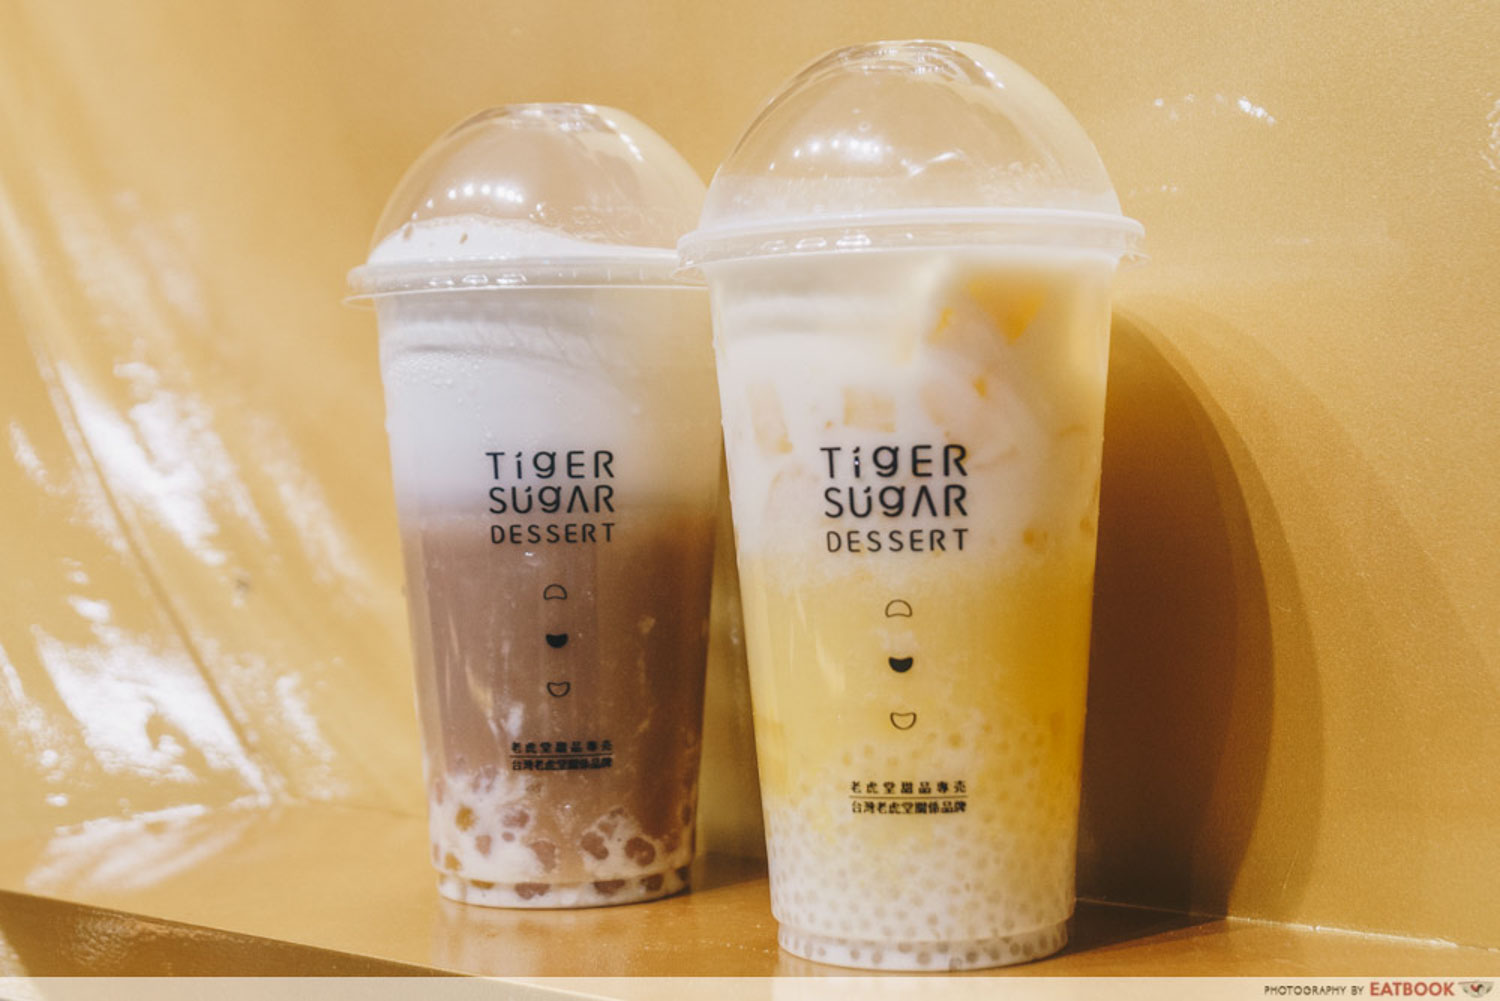 Bubble Tea Shops - Tiger Sugar Dessert